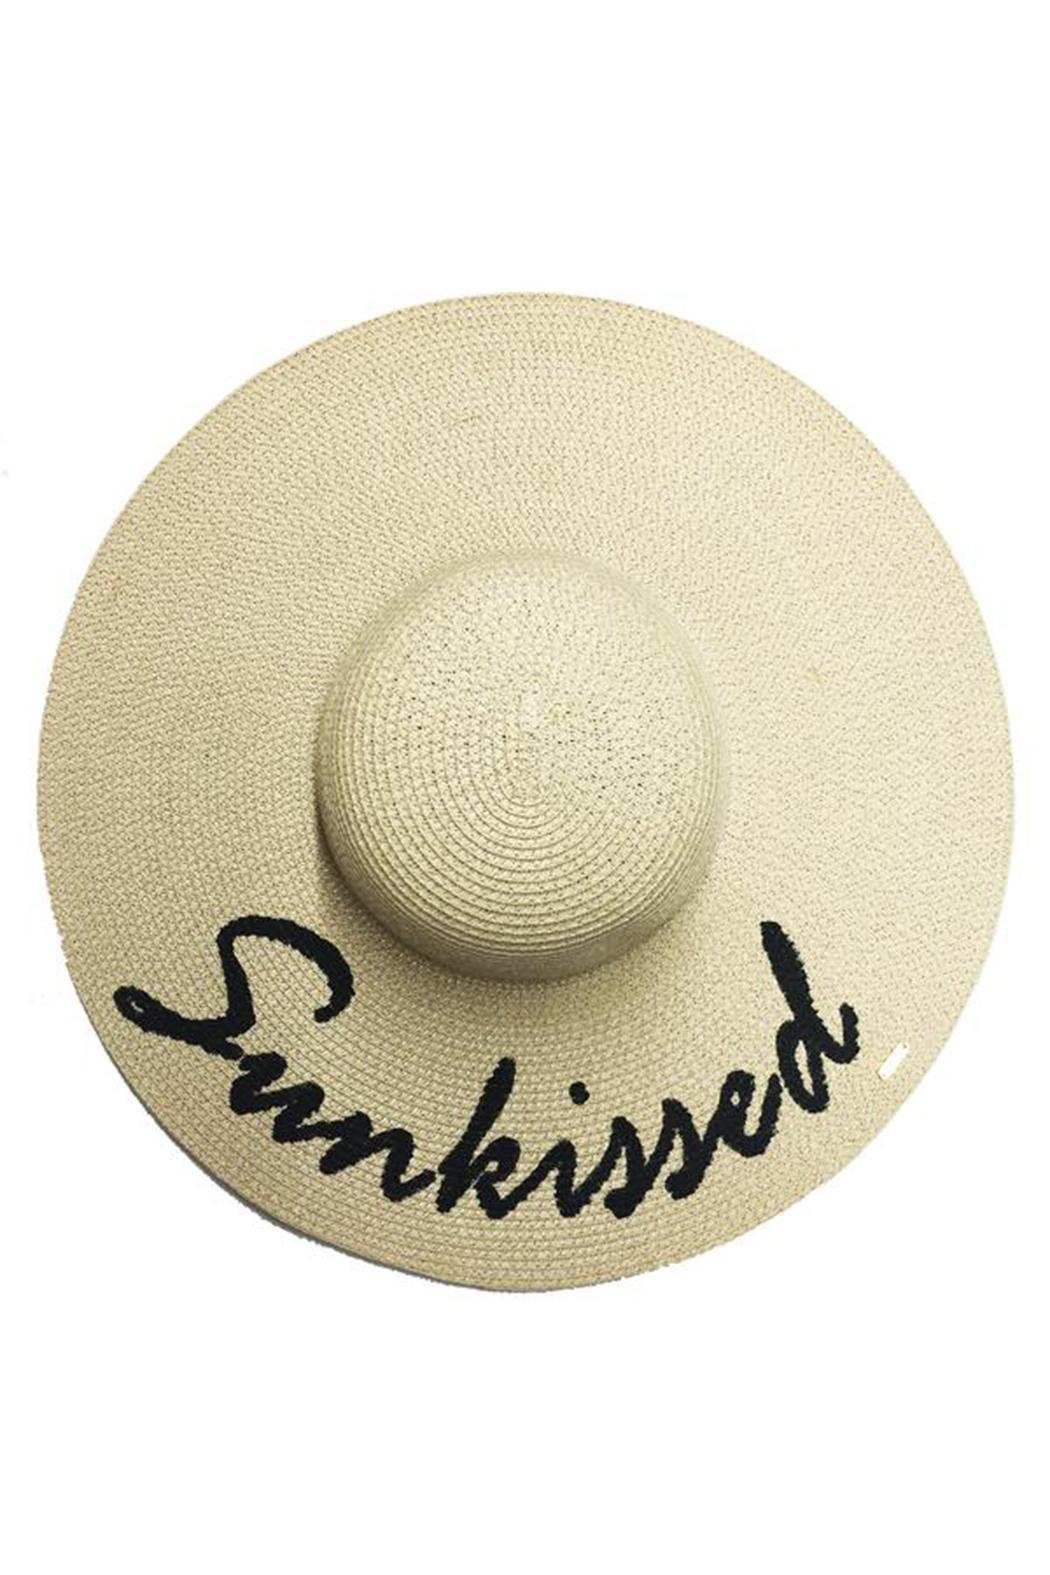 Abaco Beach Company Sunkissed Beach Hat - Main Image